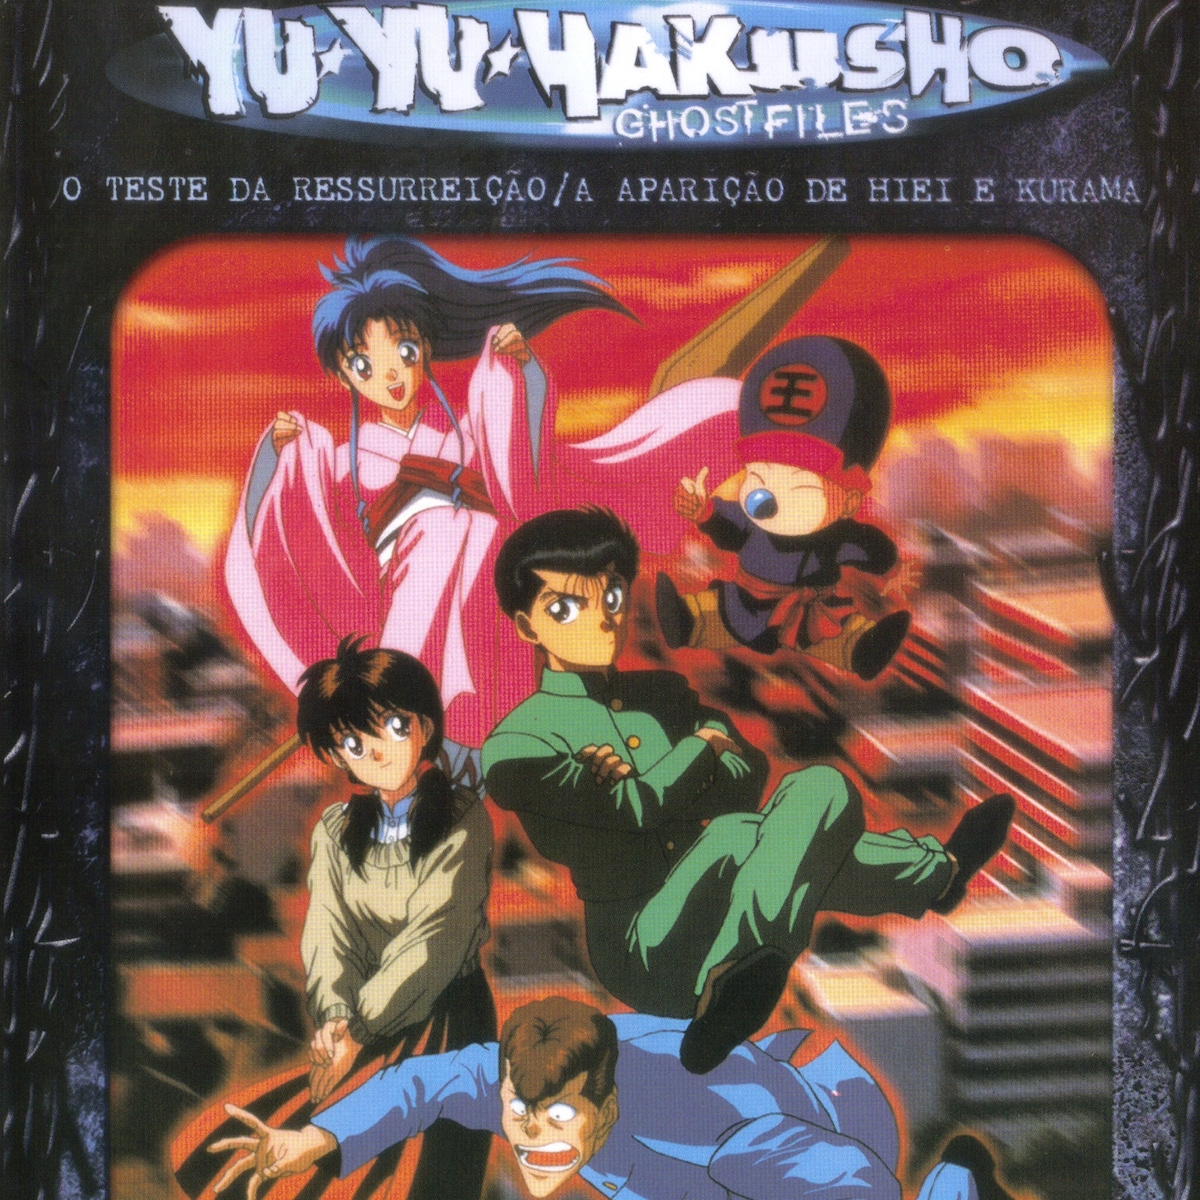 Funko Pop Yu Yu Hakusho Checklist, Set Gallery, Exclusives